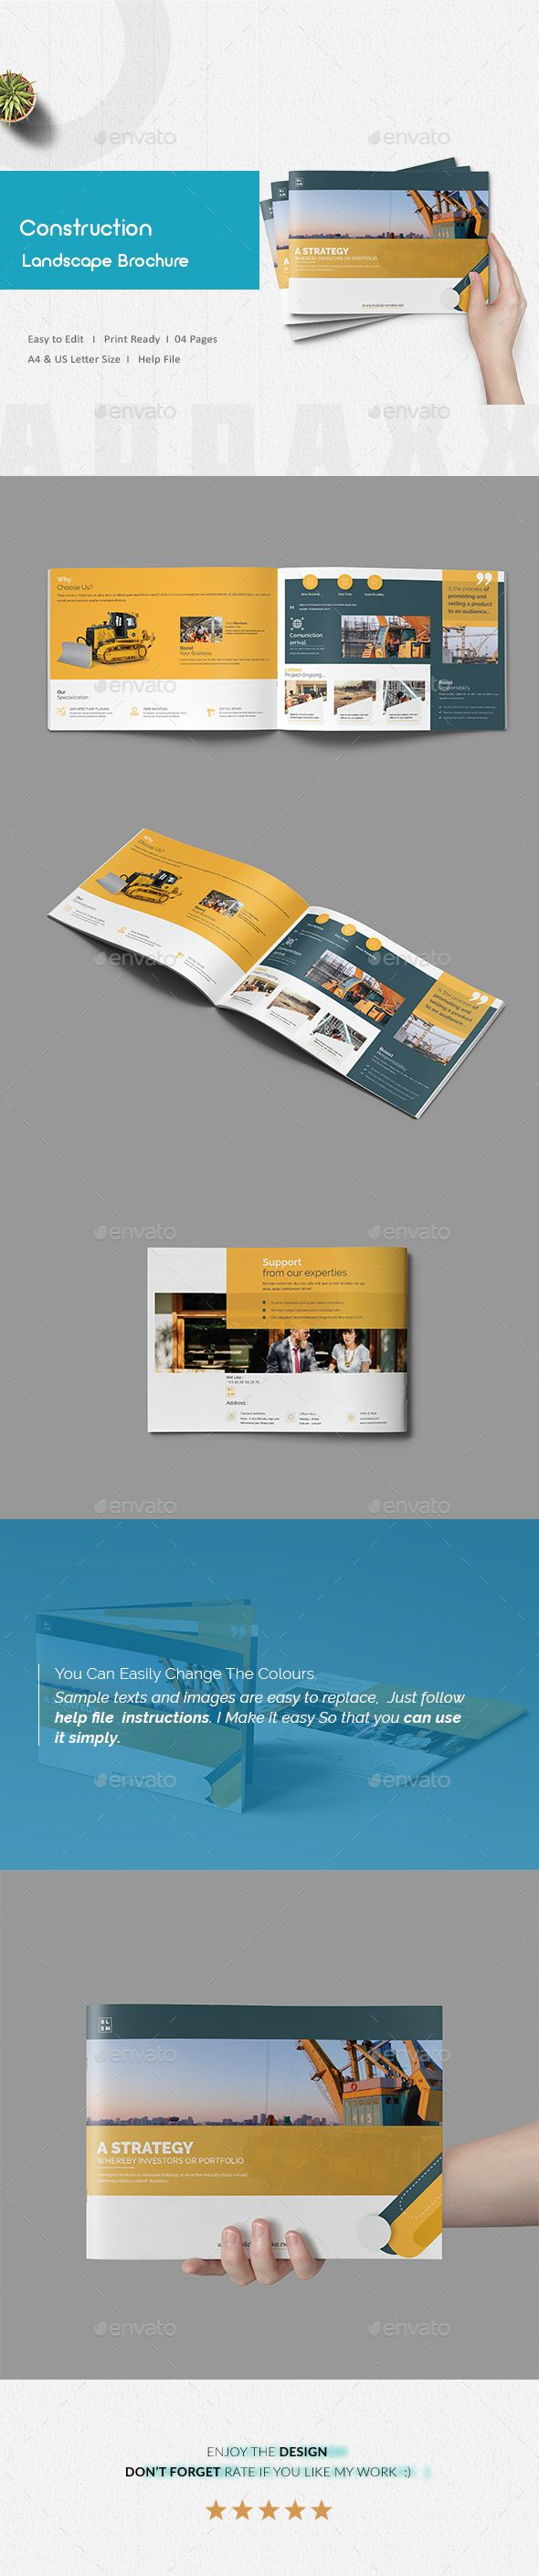 Construction Landscape Brochure Template InDesign INDD - 4 Pages A4 & US Letter Size